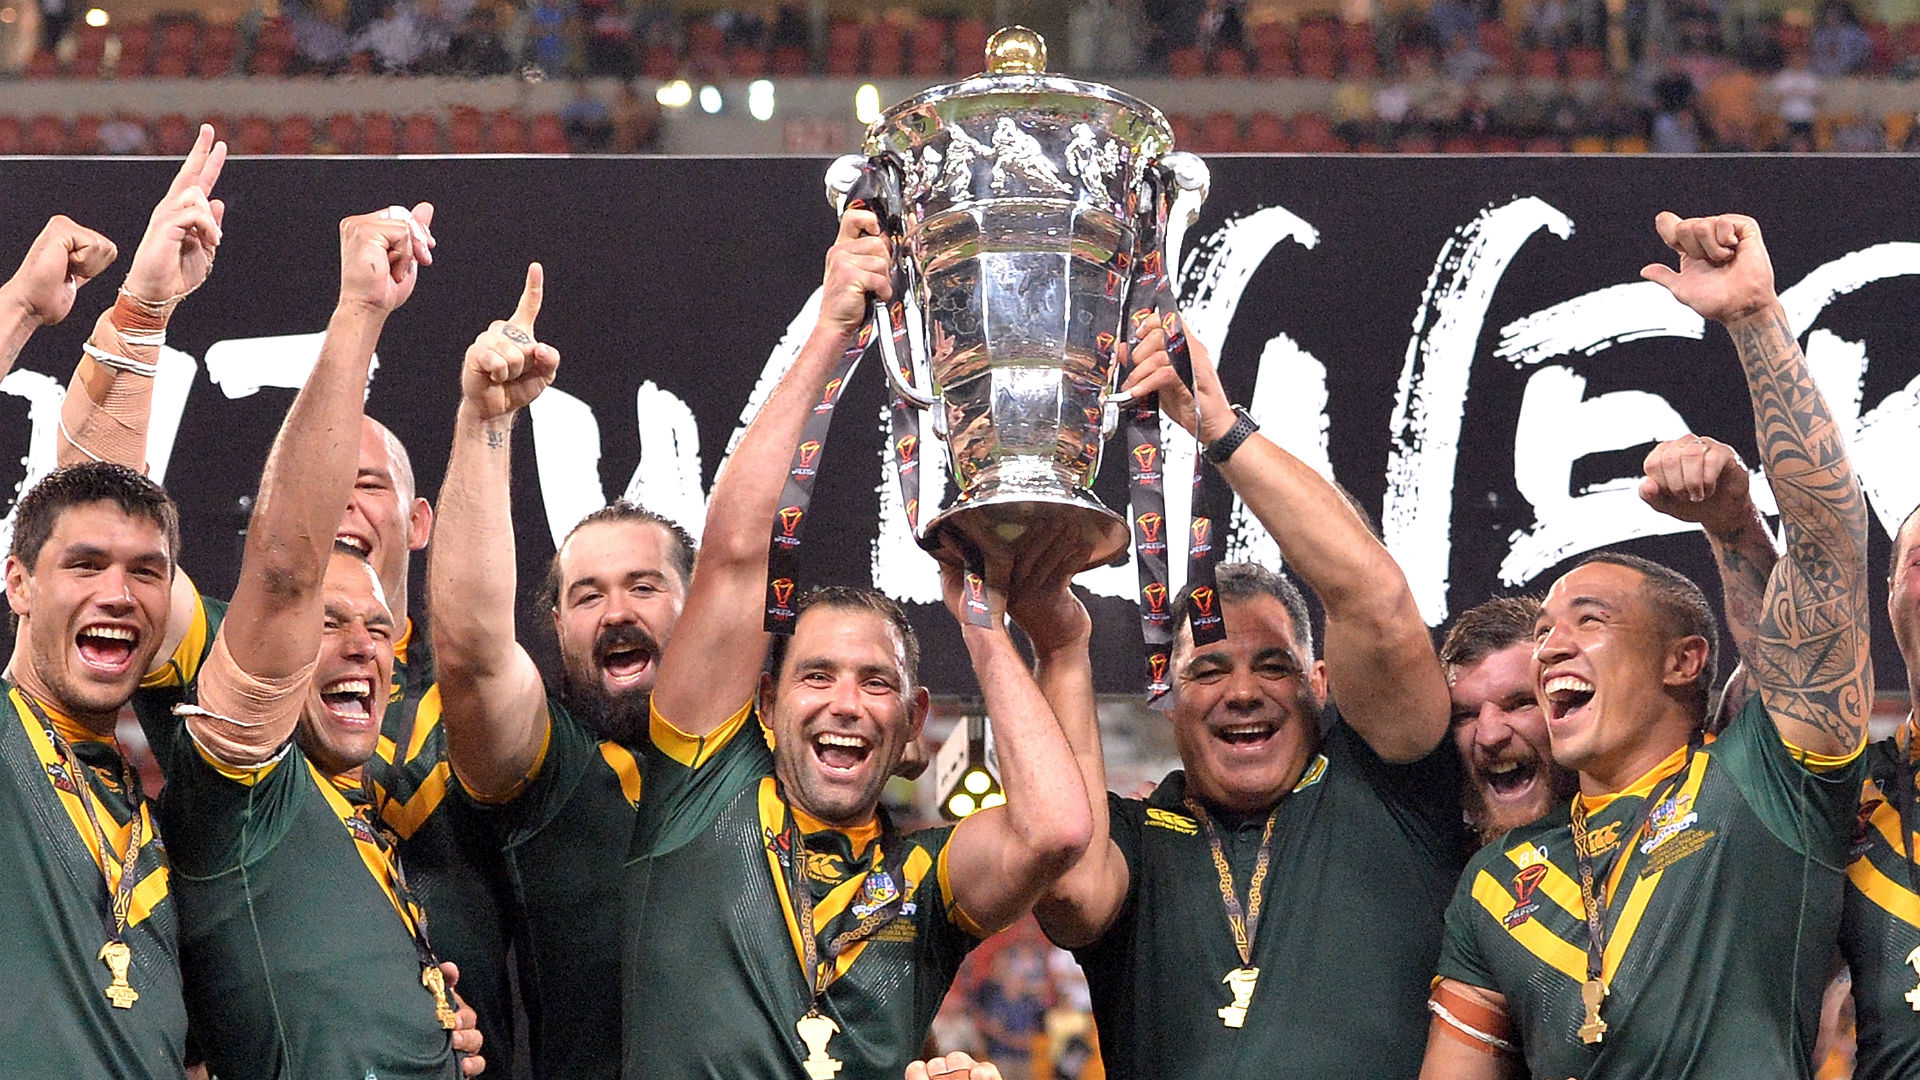 The worsening COVID-19 situation in the United Kingdom has been cited as a factor in Australia and New Zealand withdrawing from the RLWC.